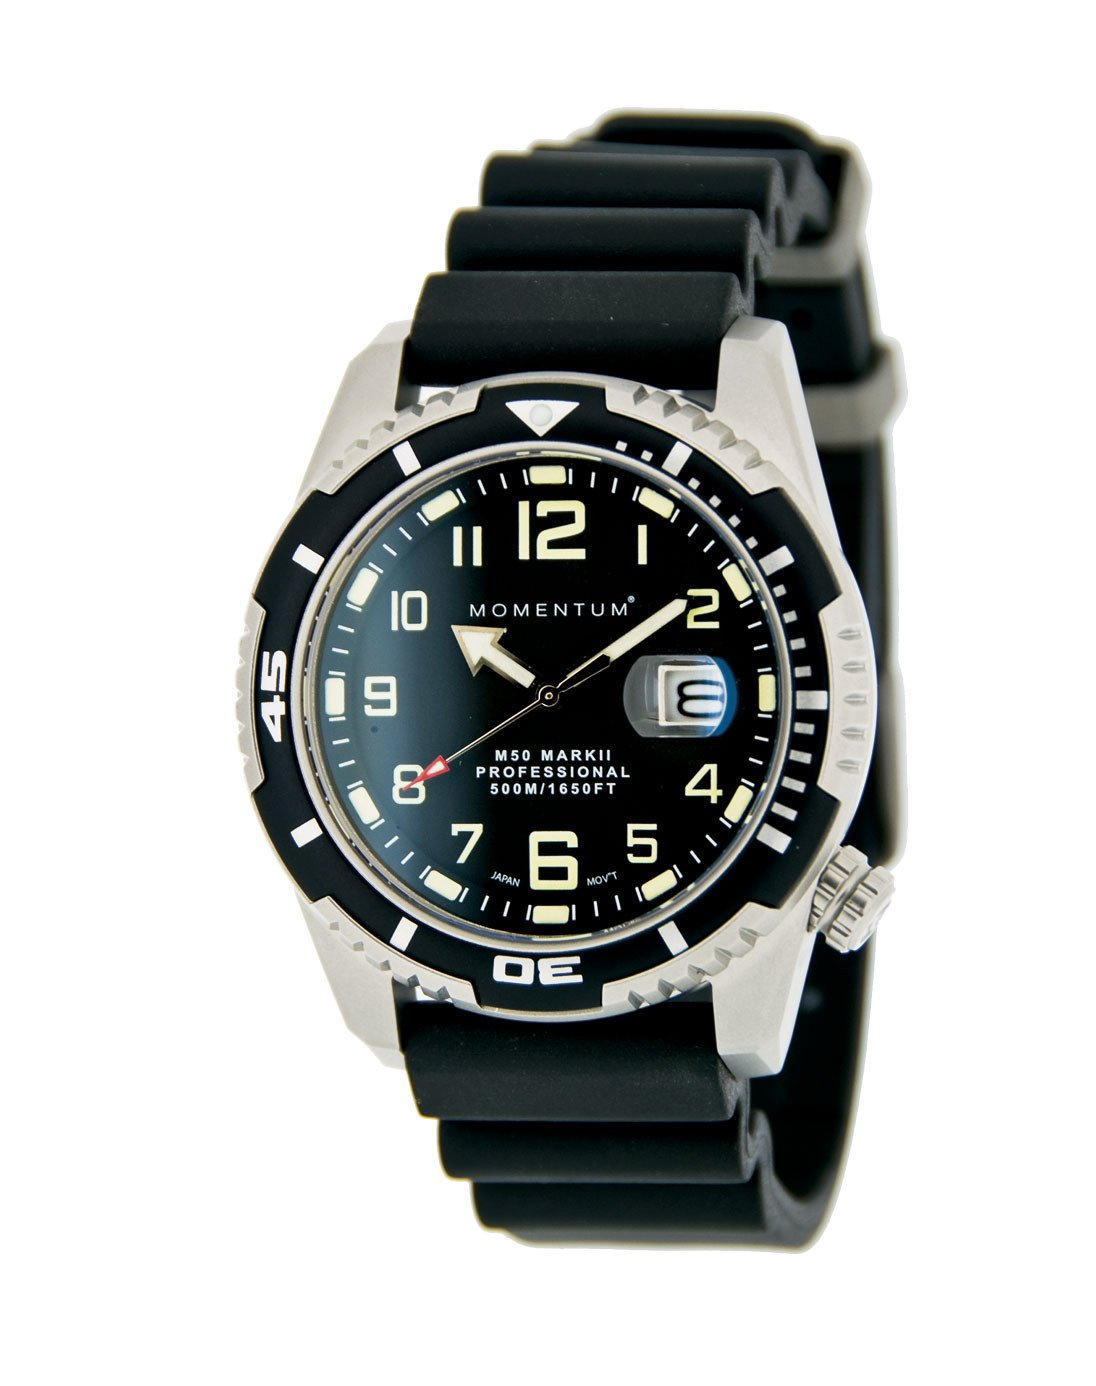 Momentum Watch - M50 Military Dive - Black Dial with Black Rubber Band